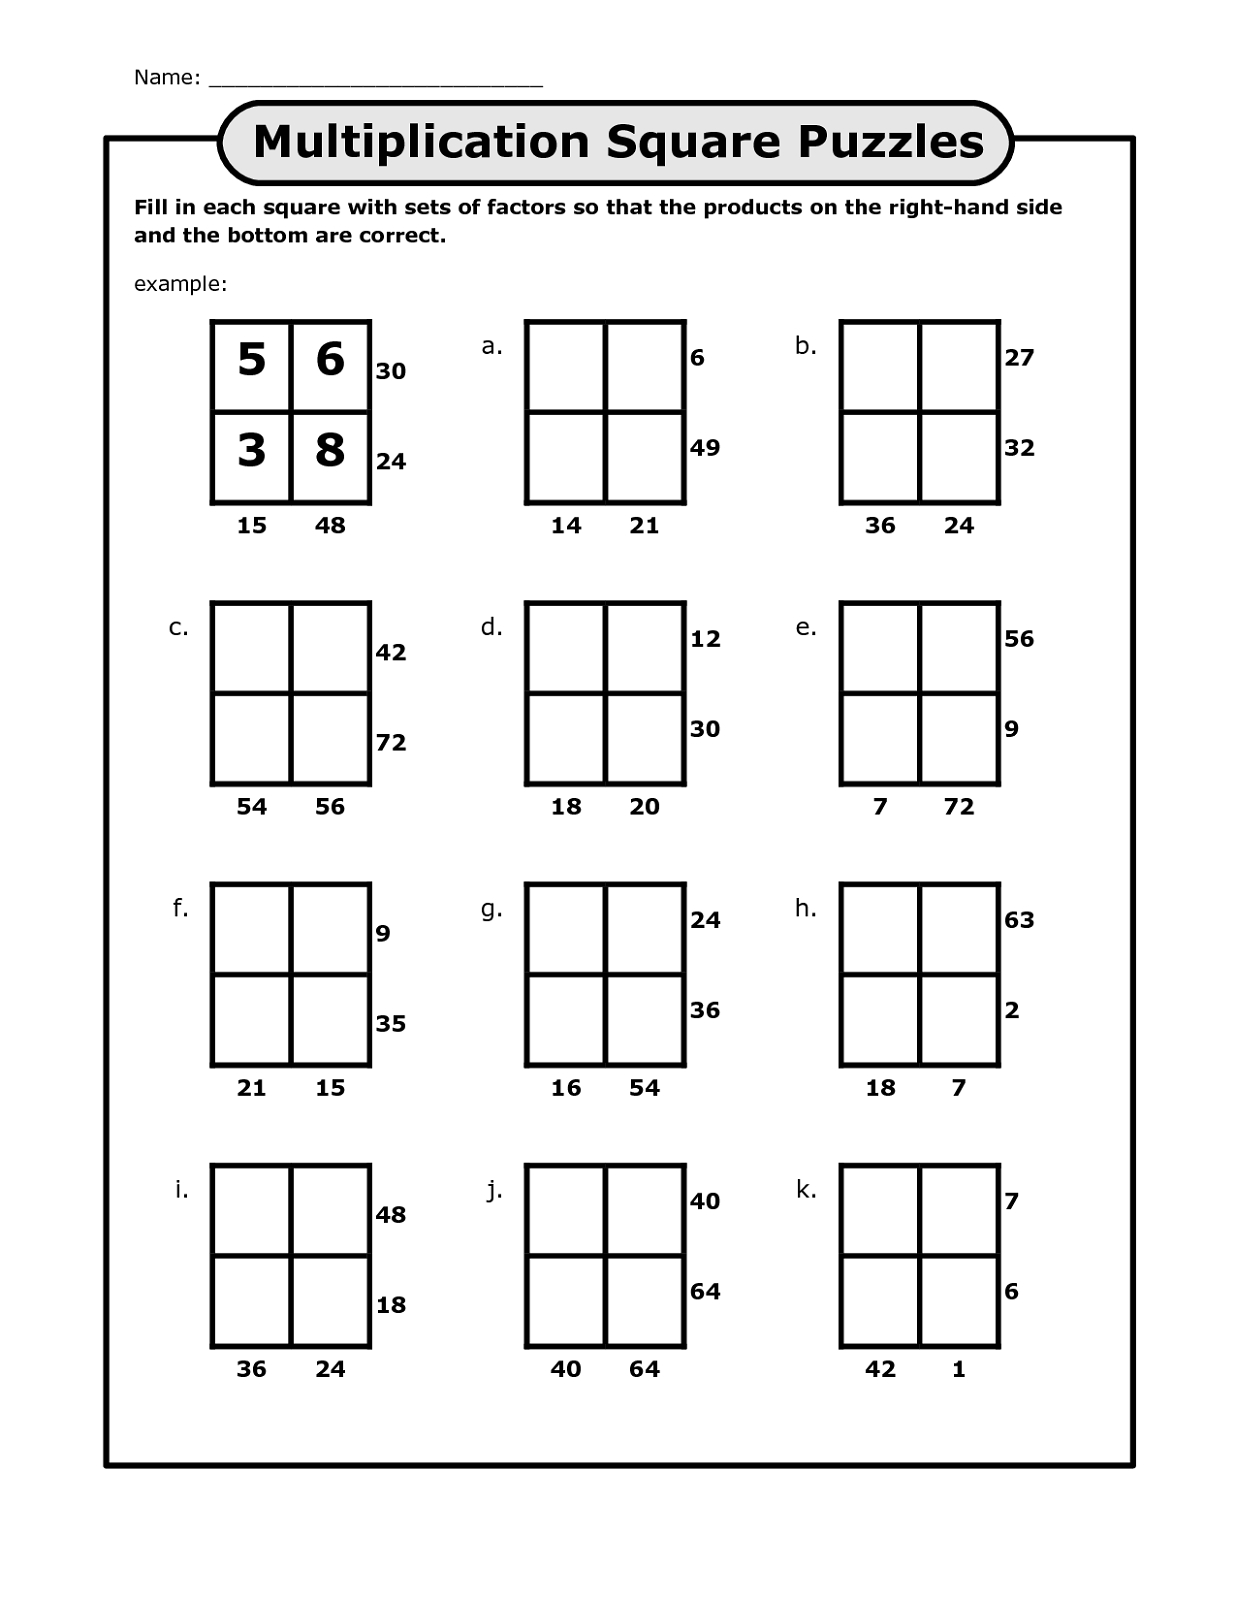 Math Puzzles Printable For Learning | Activity Shelter - Printable Multiplication Puzzles